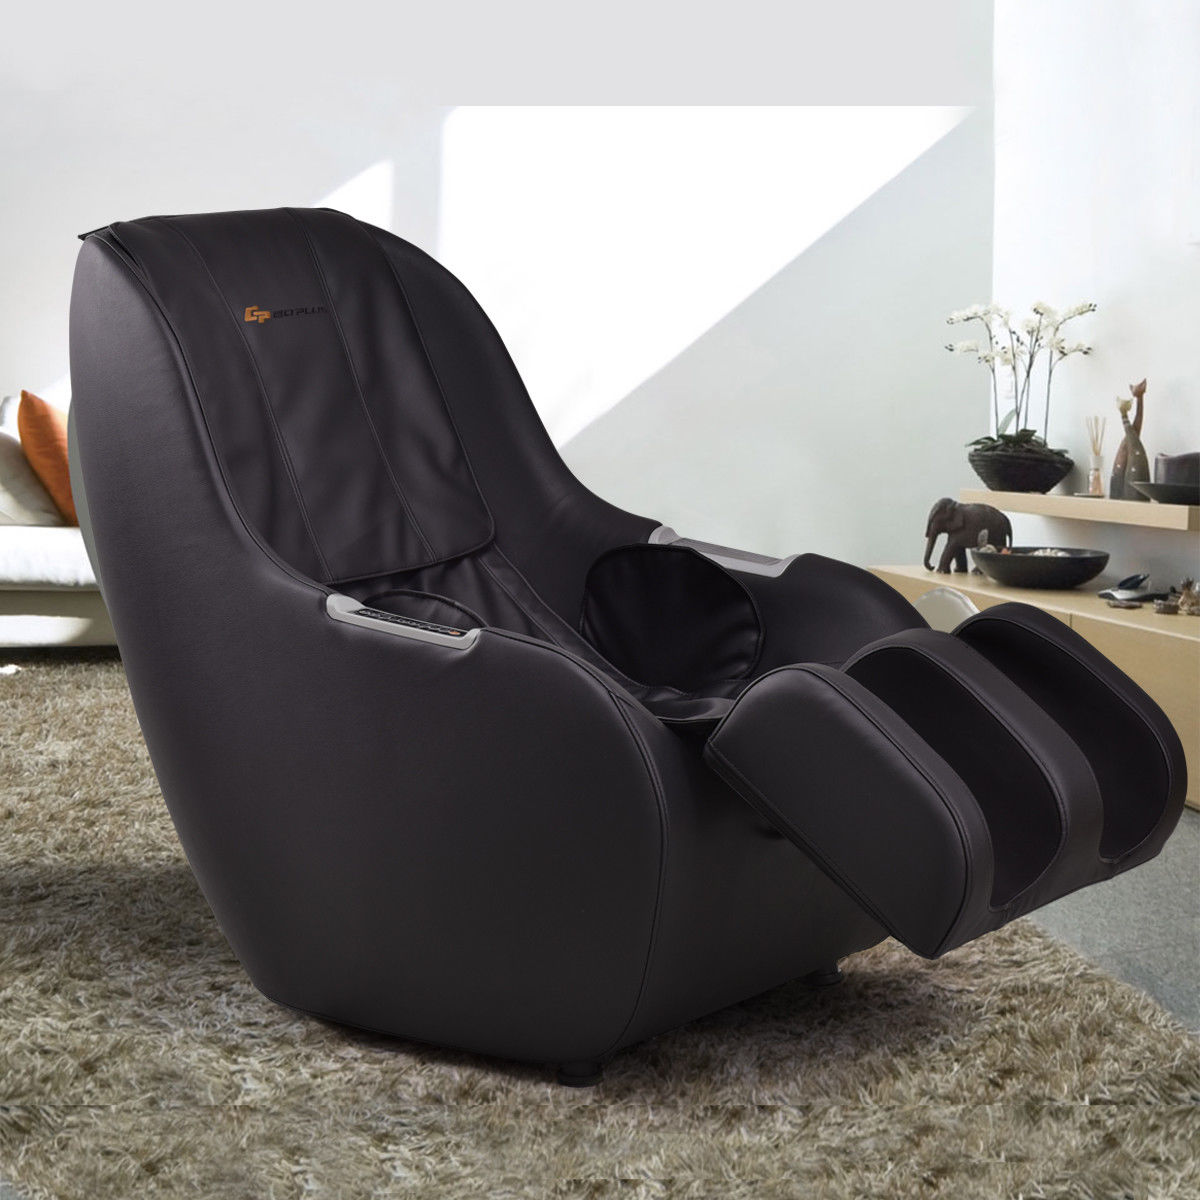 Goplus Electric Full Body Massage Chair Roller 3D Kneading Knocking Massage Chair Black